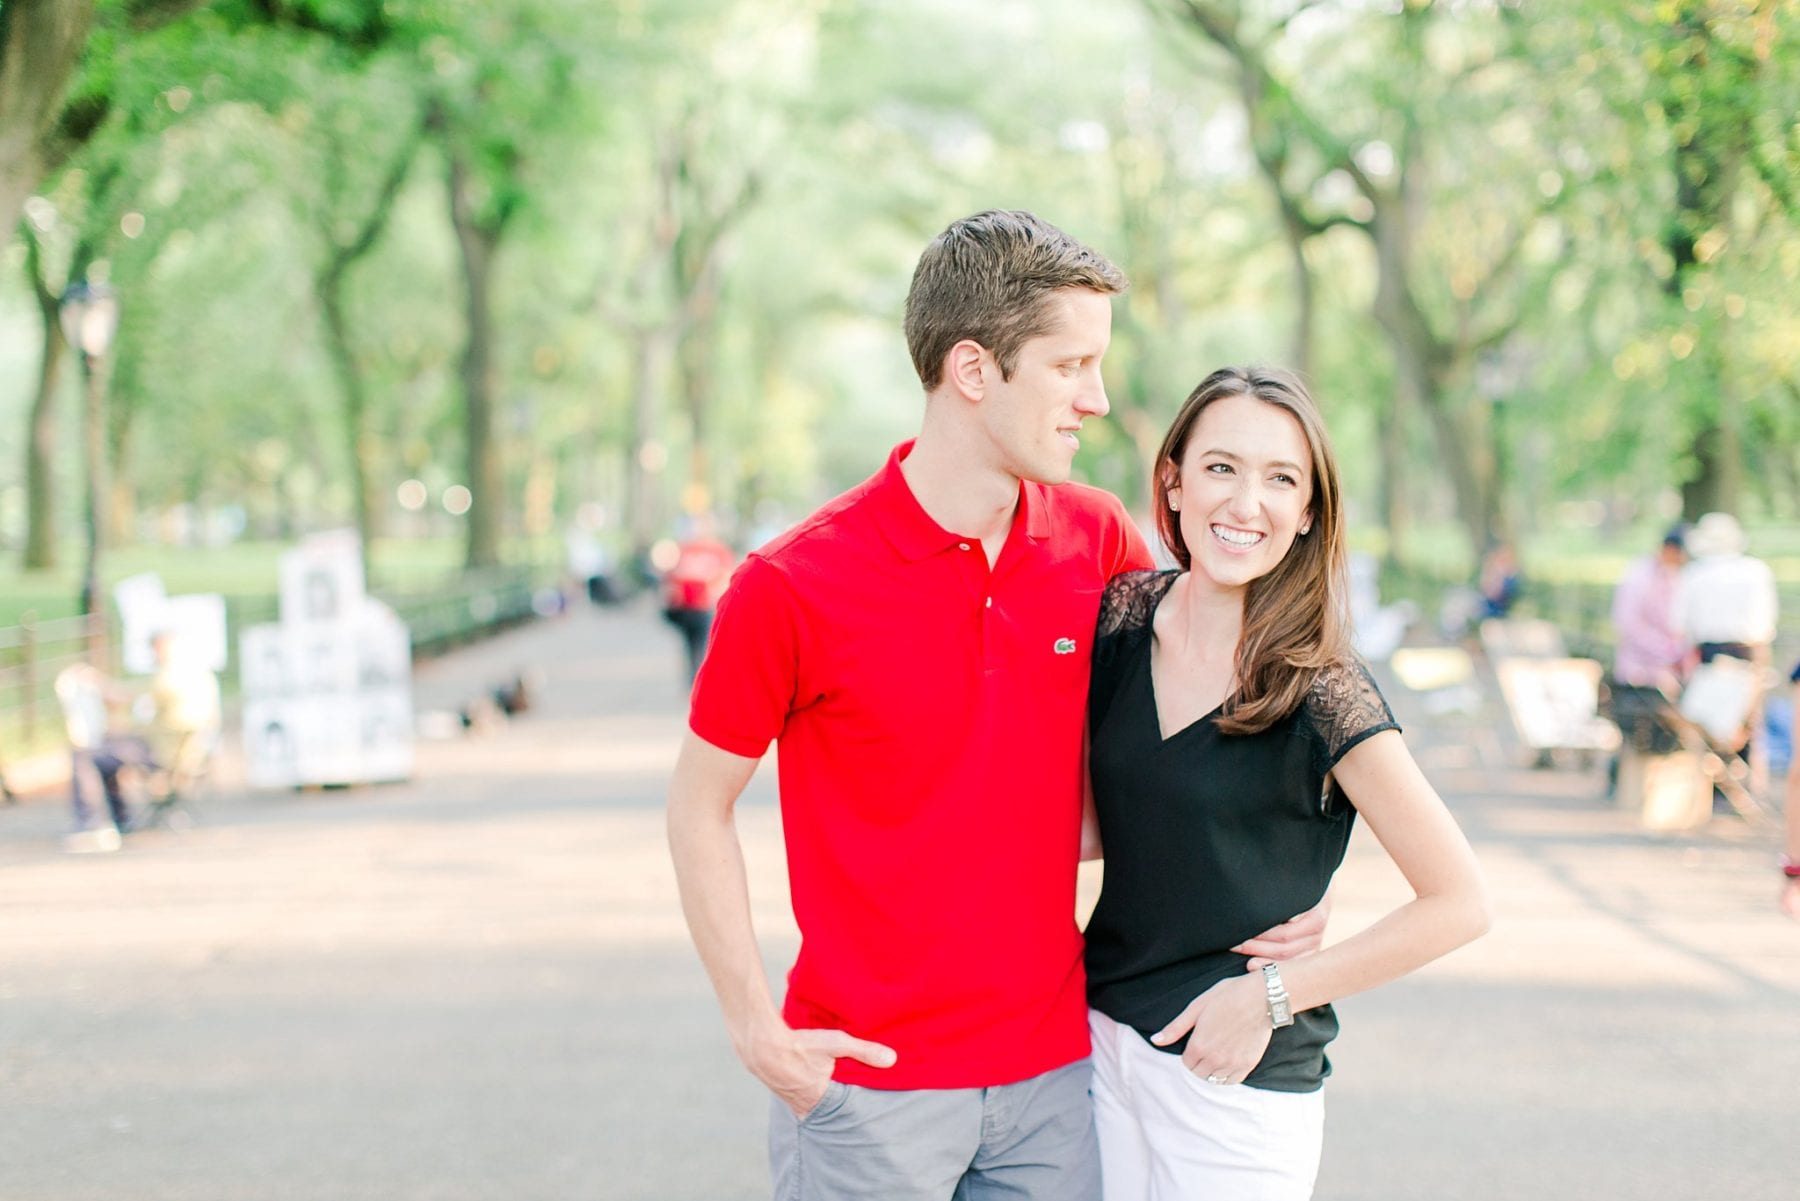 West Village Central Park Engagement Photos NYC Wedding Photographer Megan Kelsey Photography-220.jpg